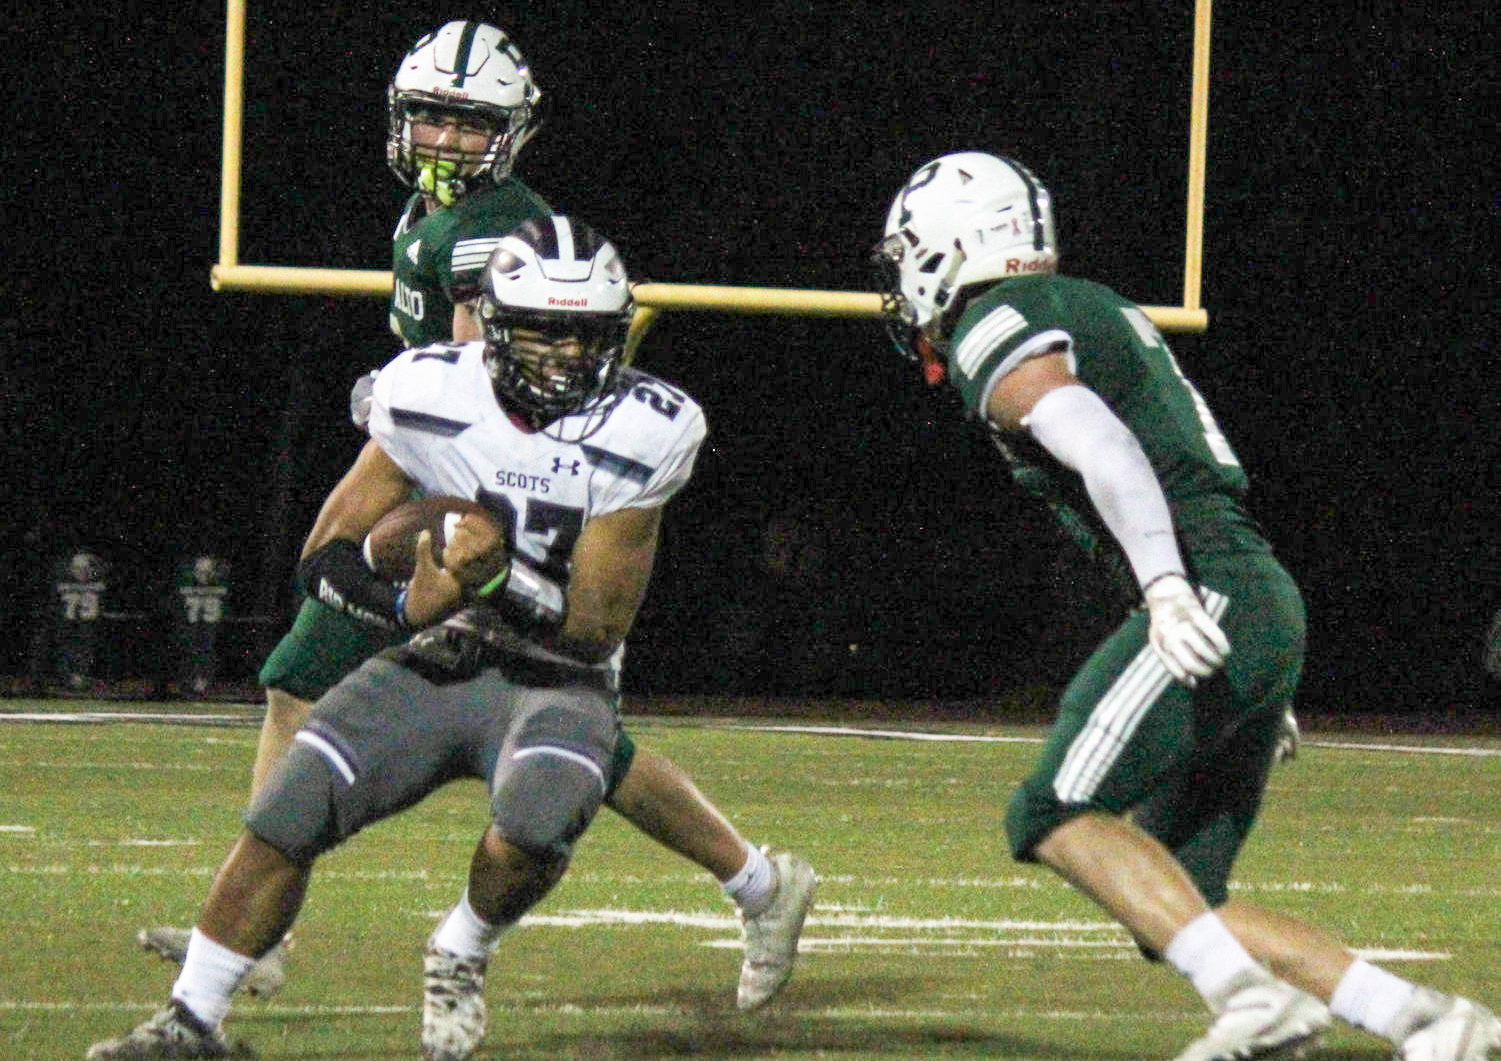 Dane Fifita, a sophomore, makes a move on a Viking defender.